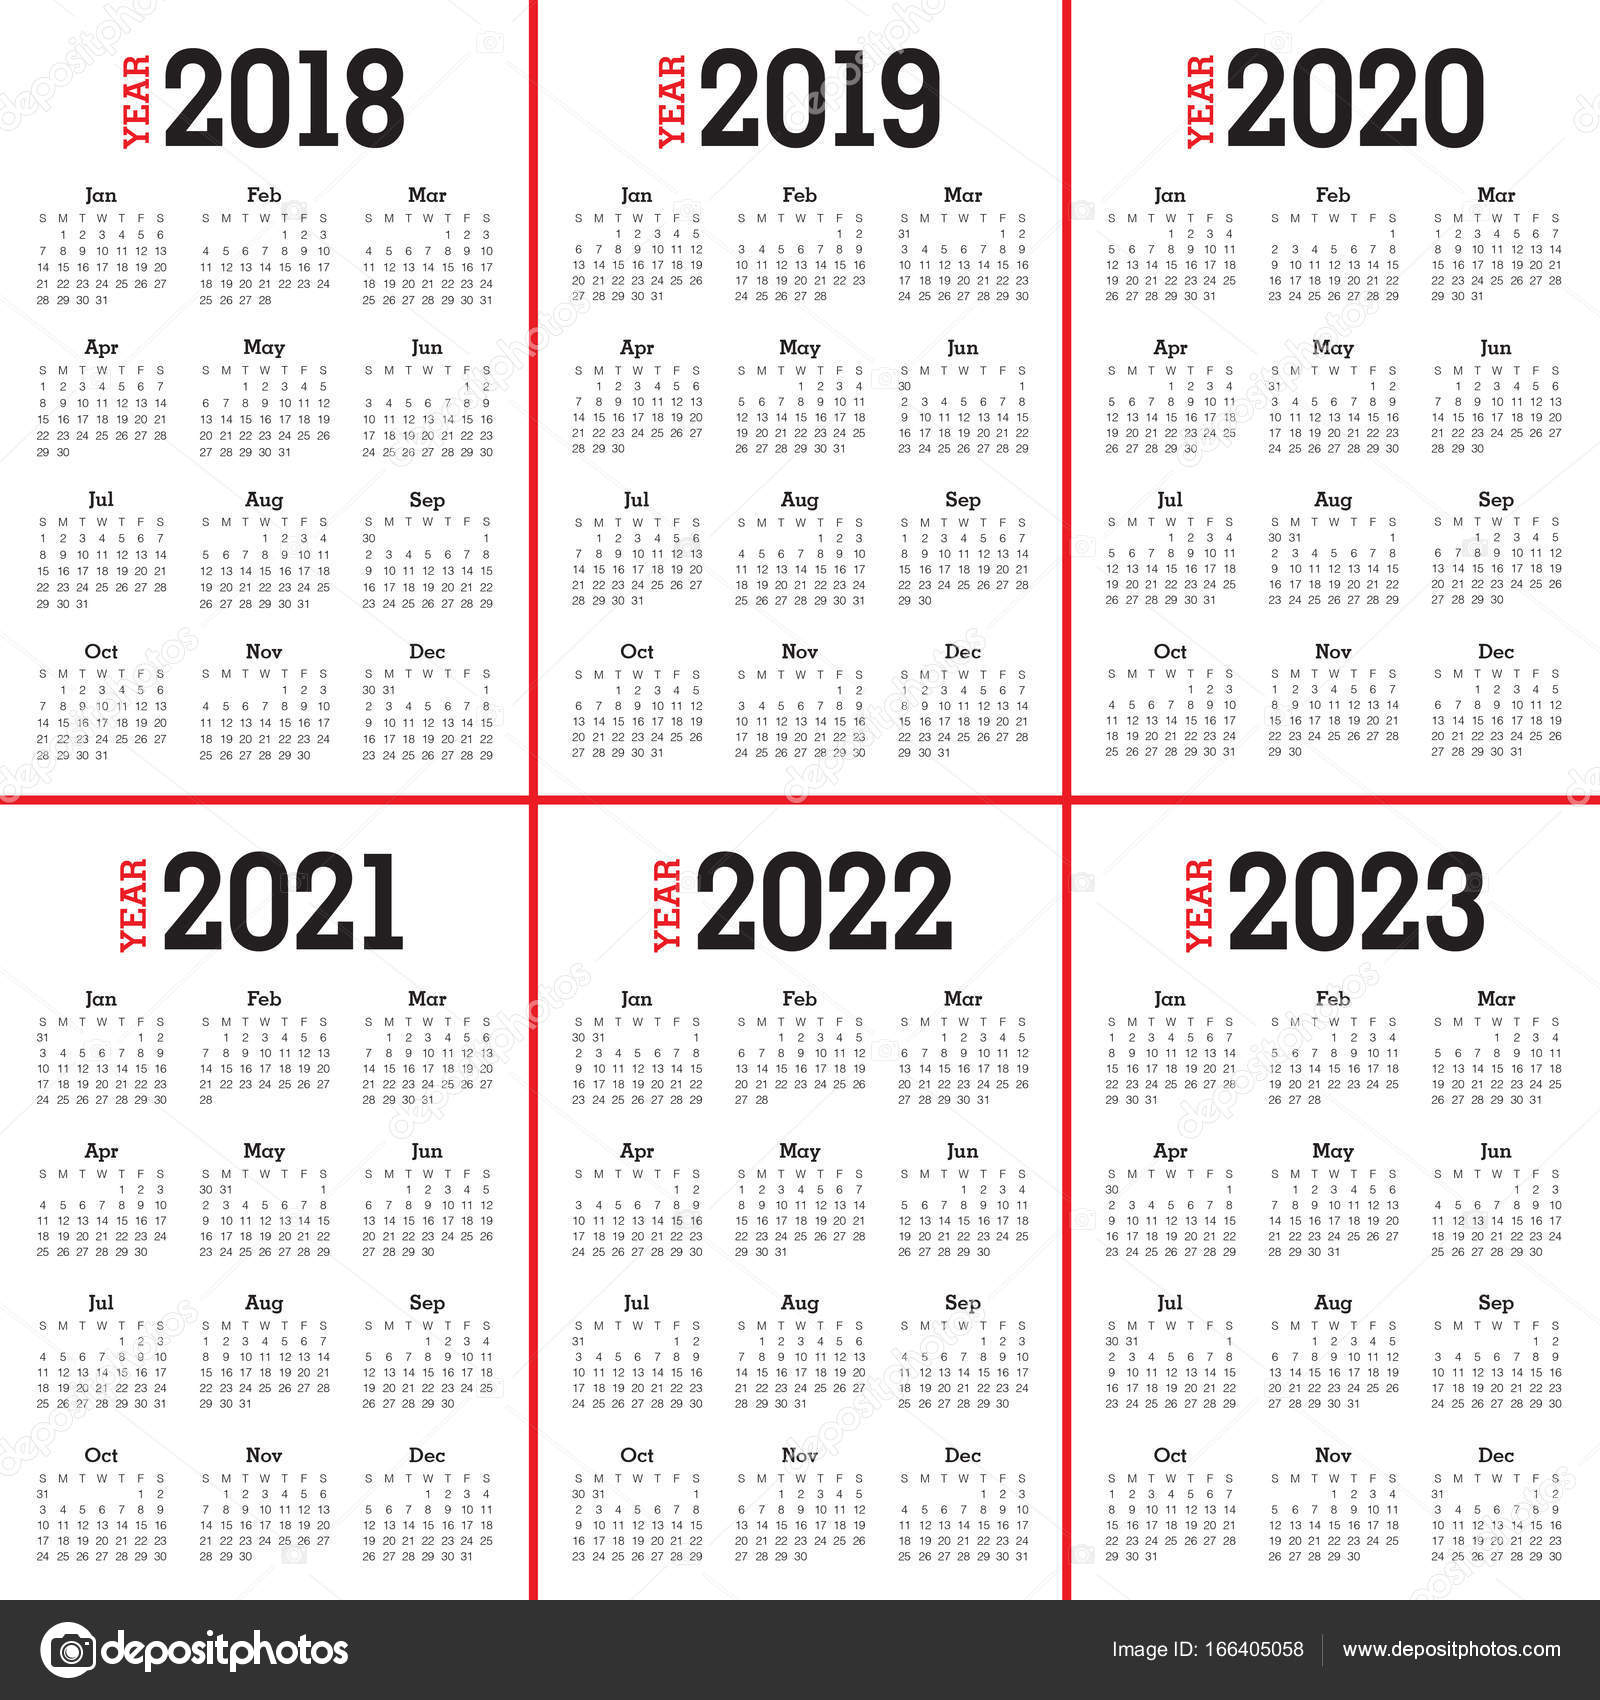 Calendario 2020 Vector Gratis.Year 2018 2019 2020 2021 2022 2023 Calendar Vector Stock